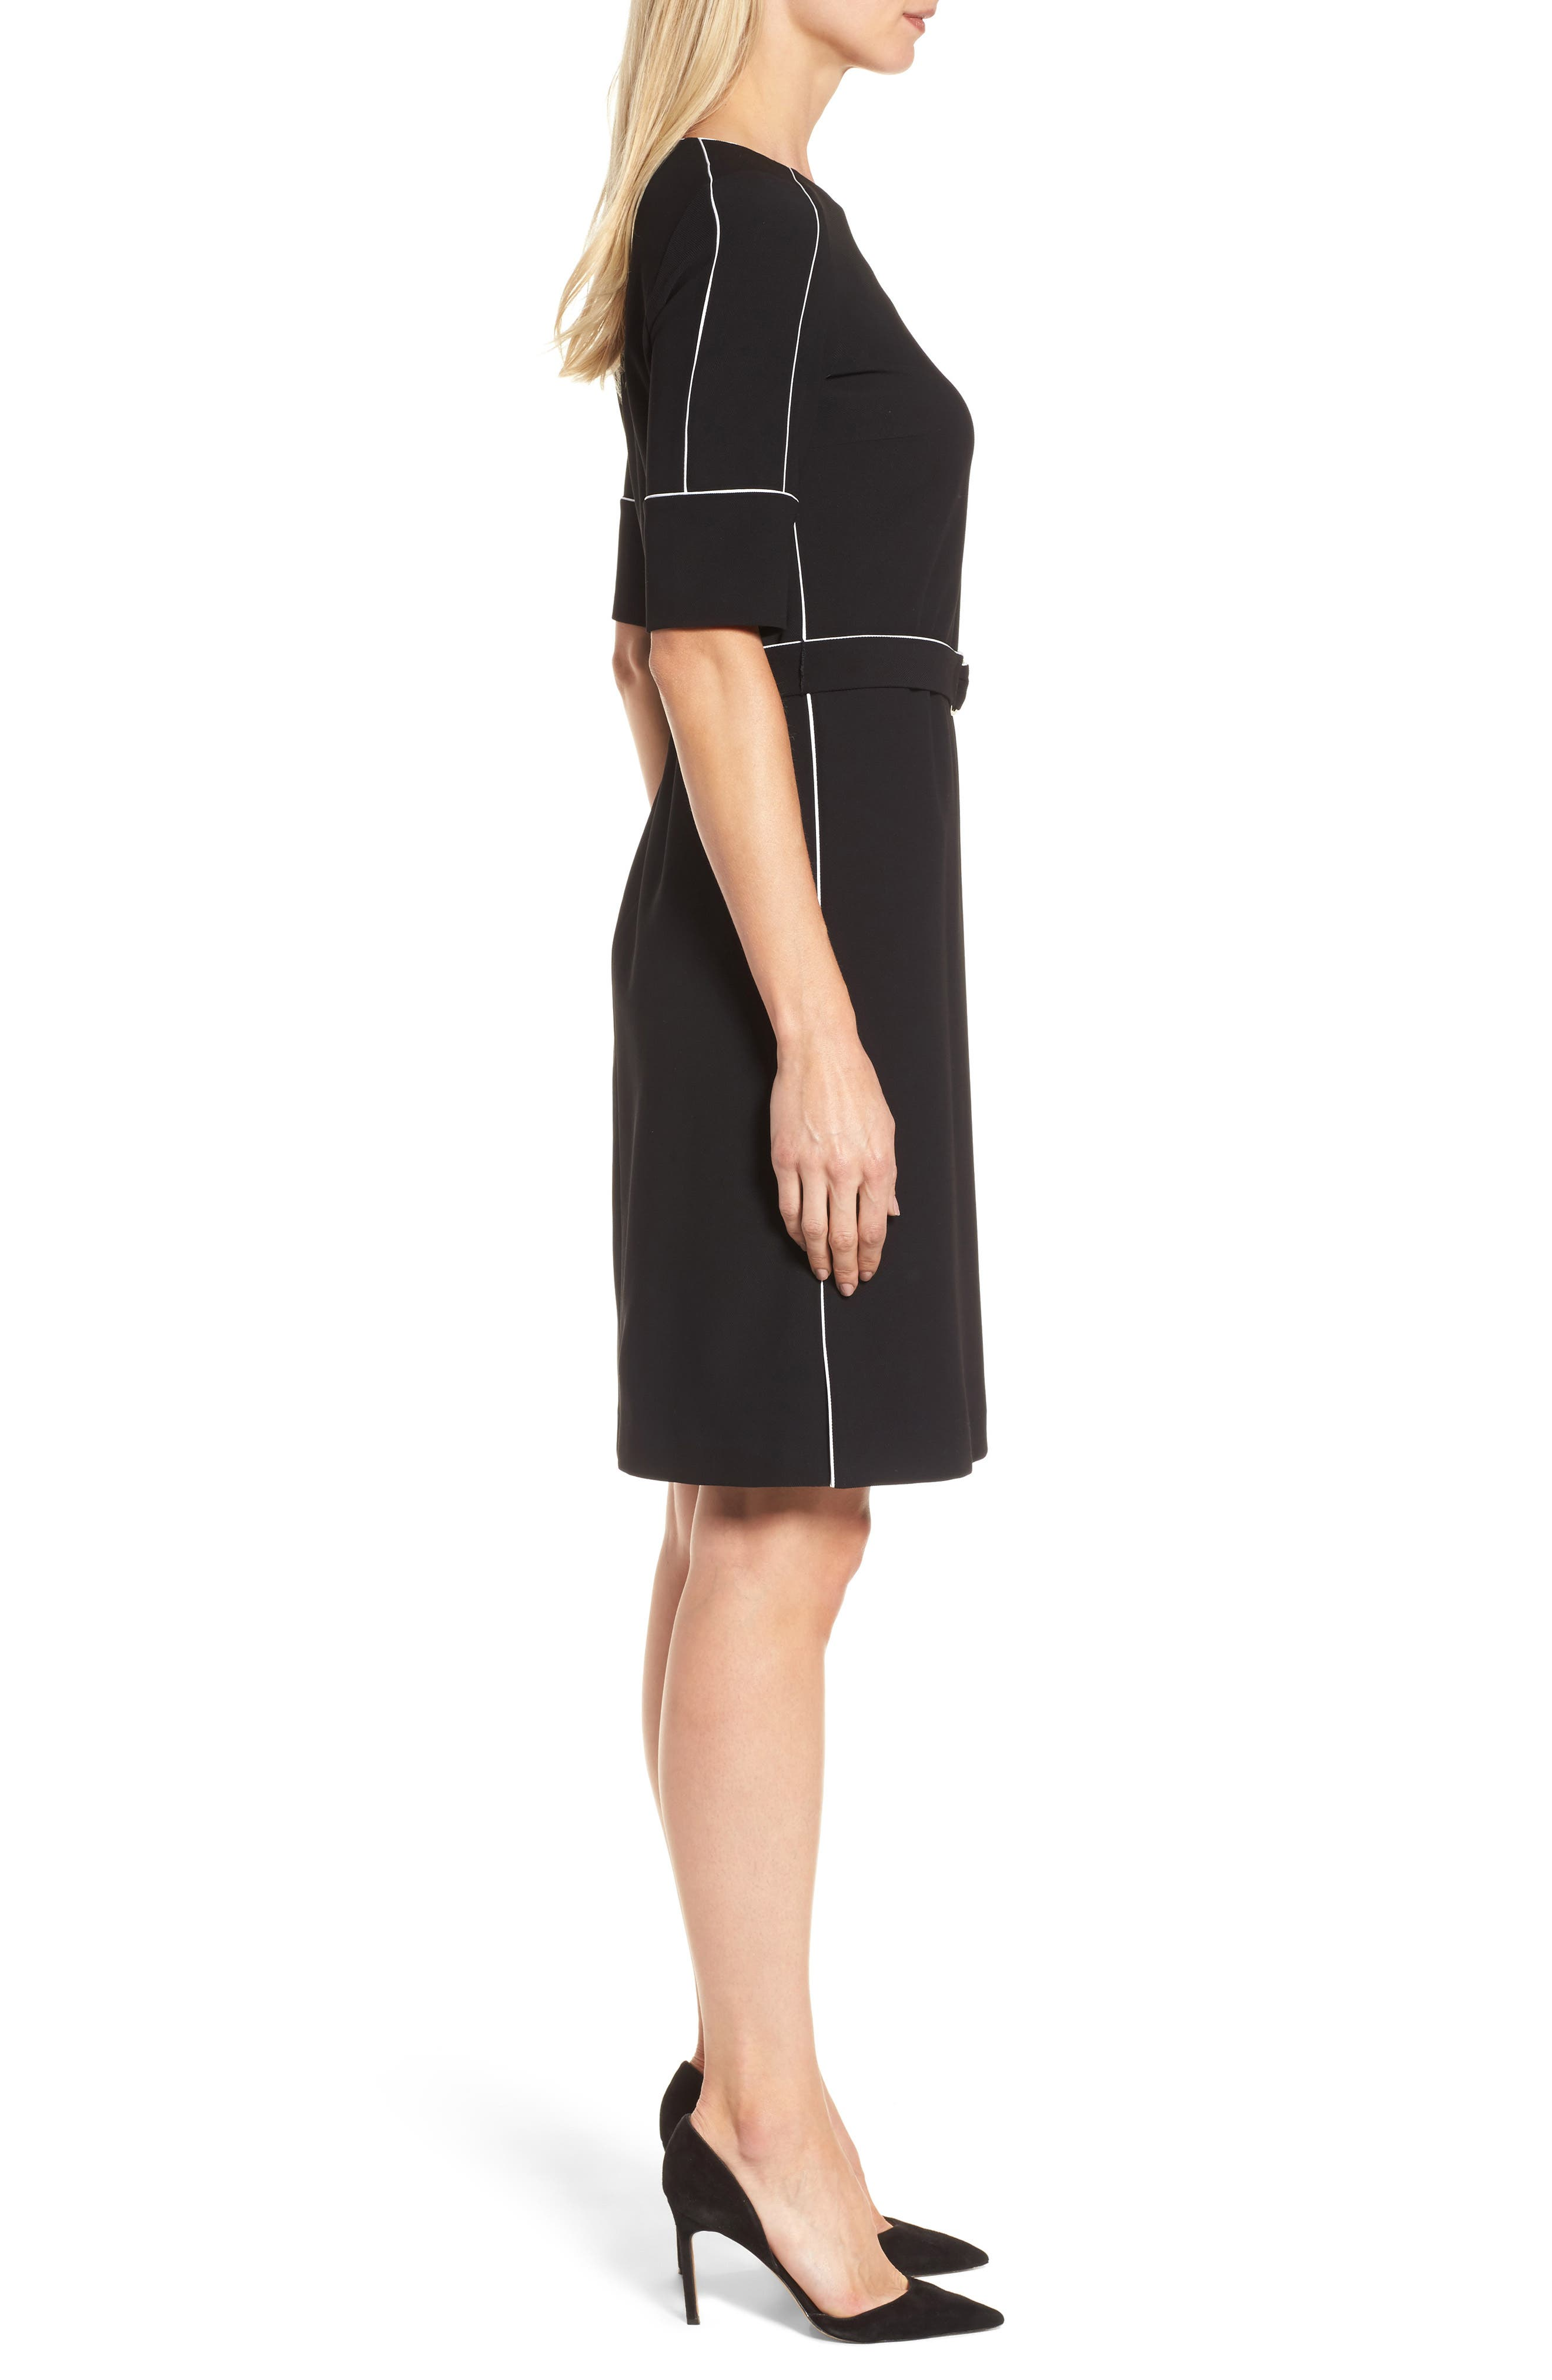 Duwimea Seamed Pencil Dress,                             Alternate thumbnail 3, color,                             001